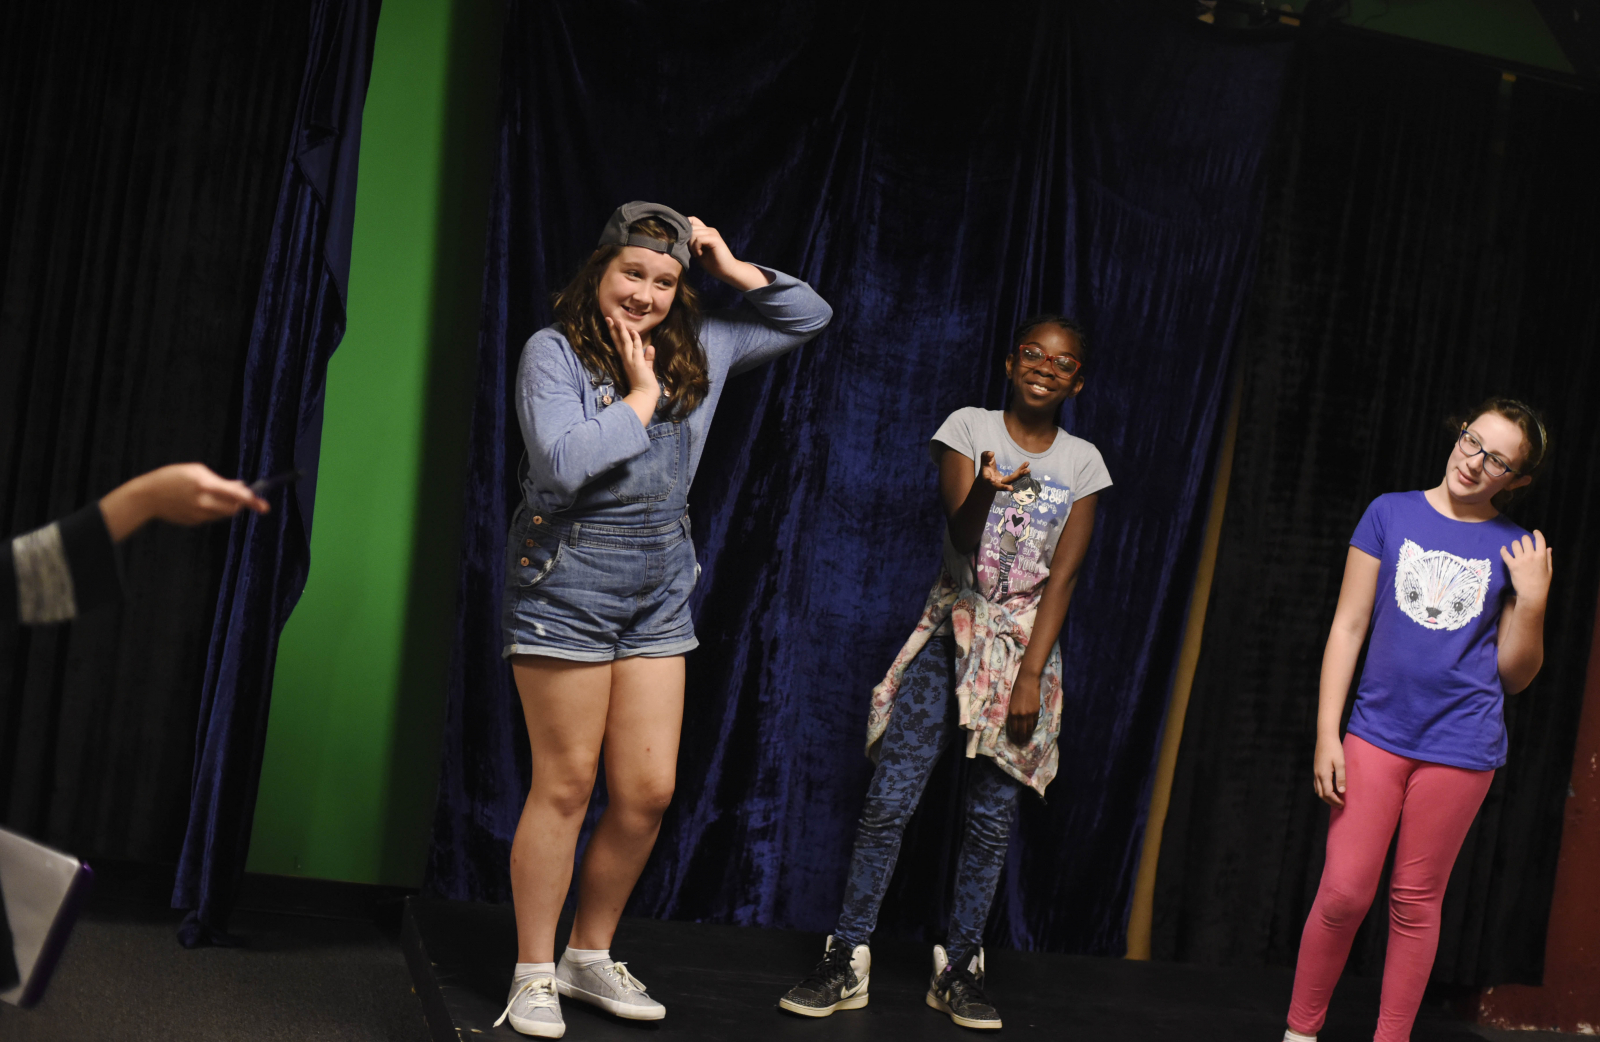 Students from Imagine That! act out words and feelings during the Summer Education Program at Proctors Tuesday, July 25, 2017.